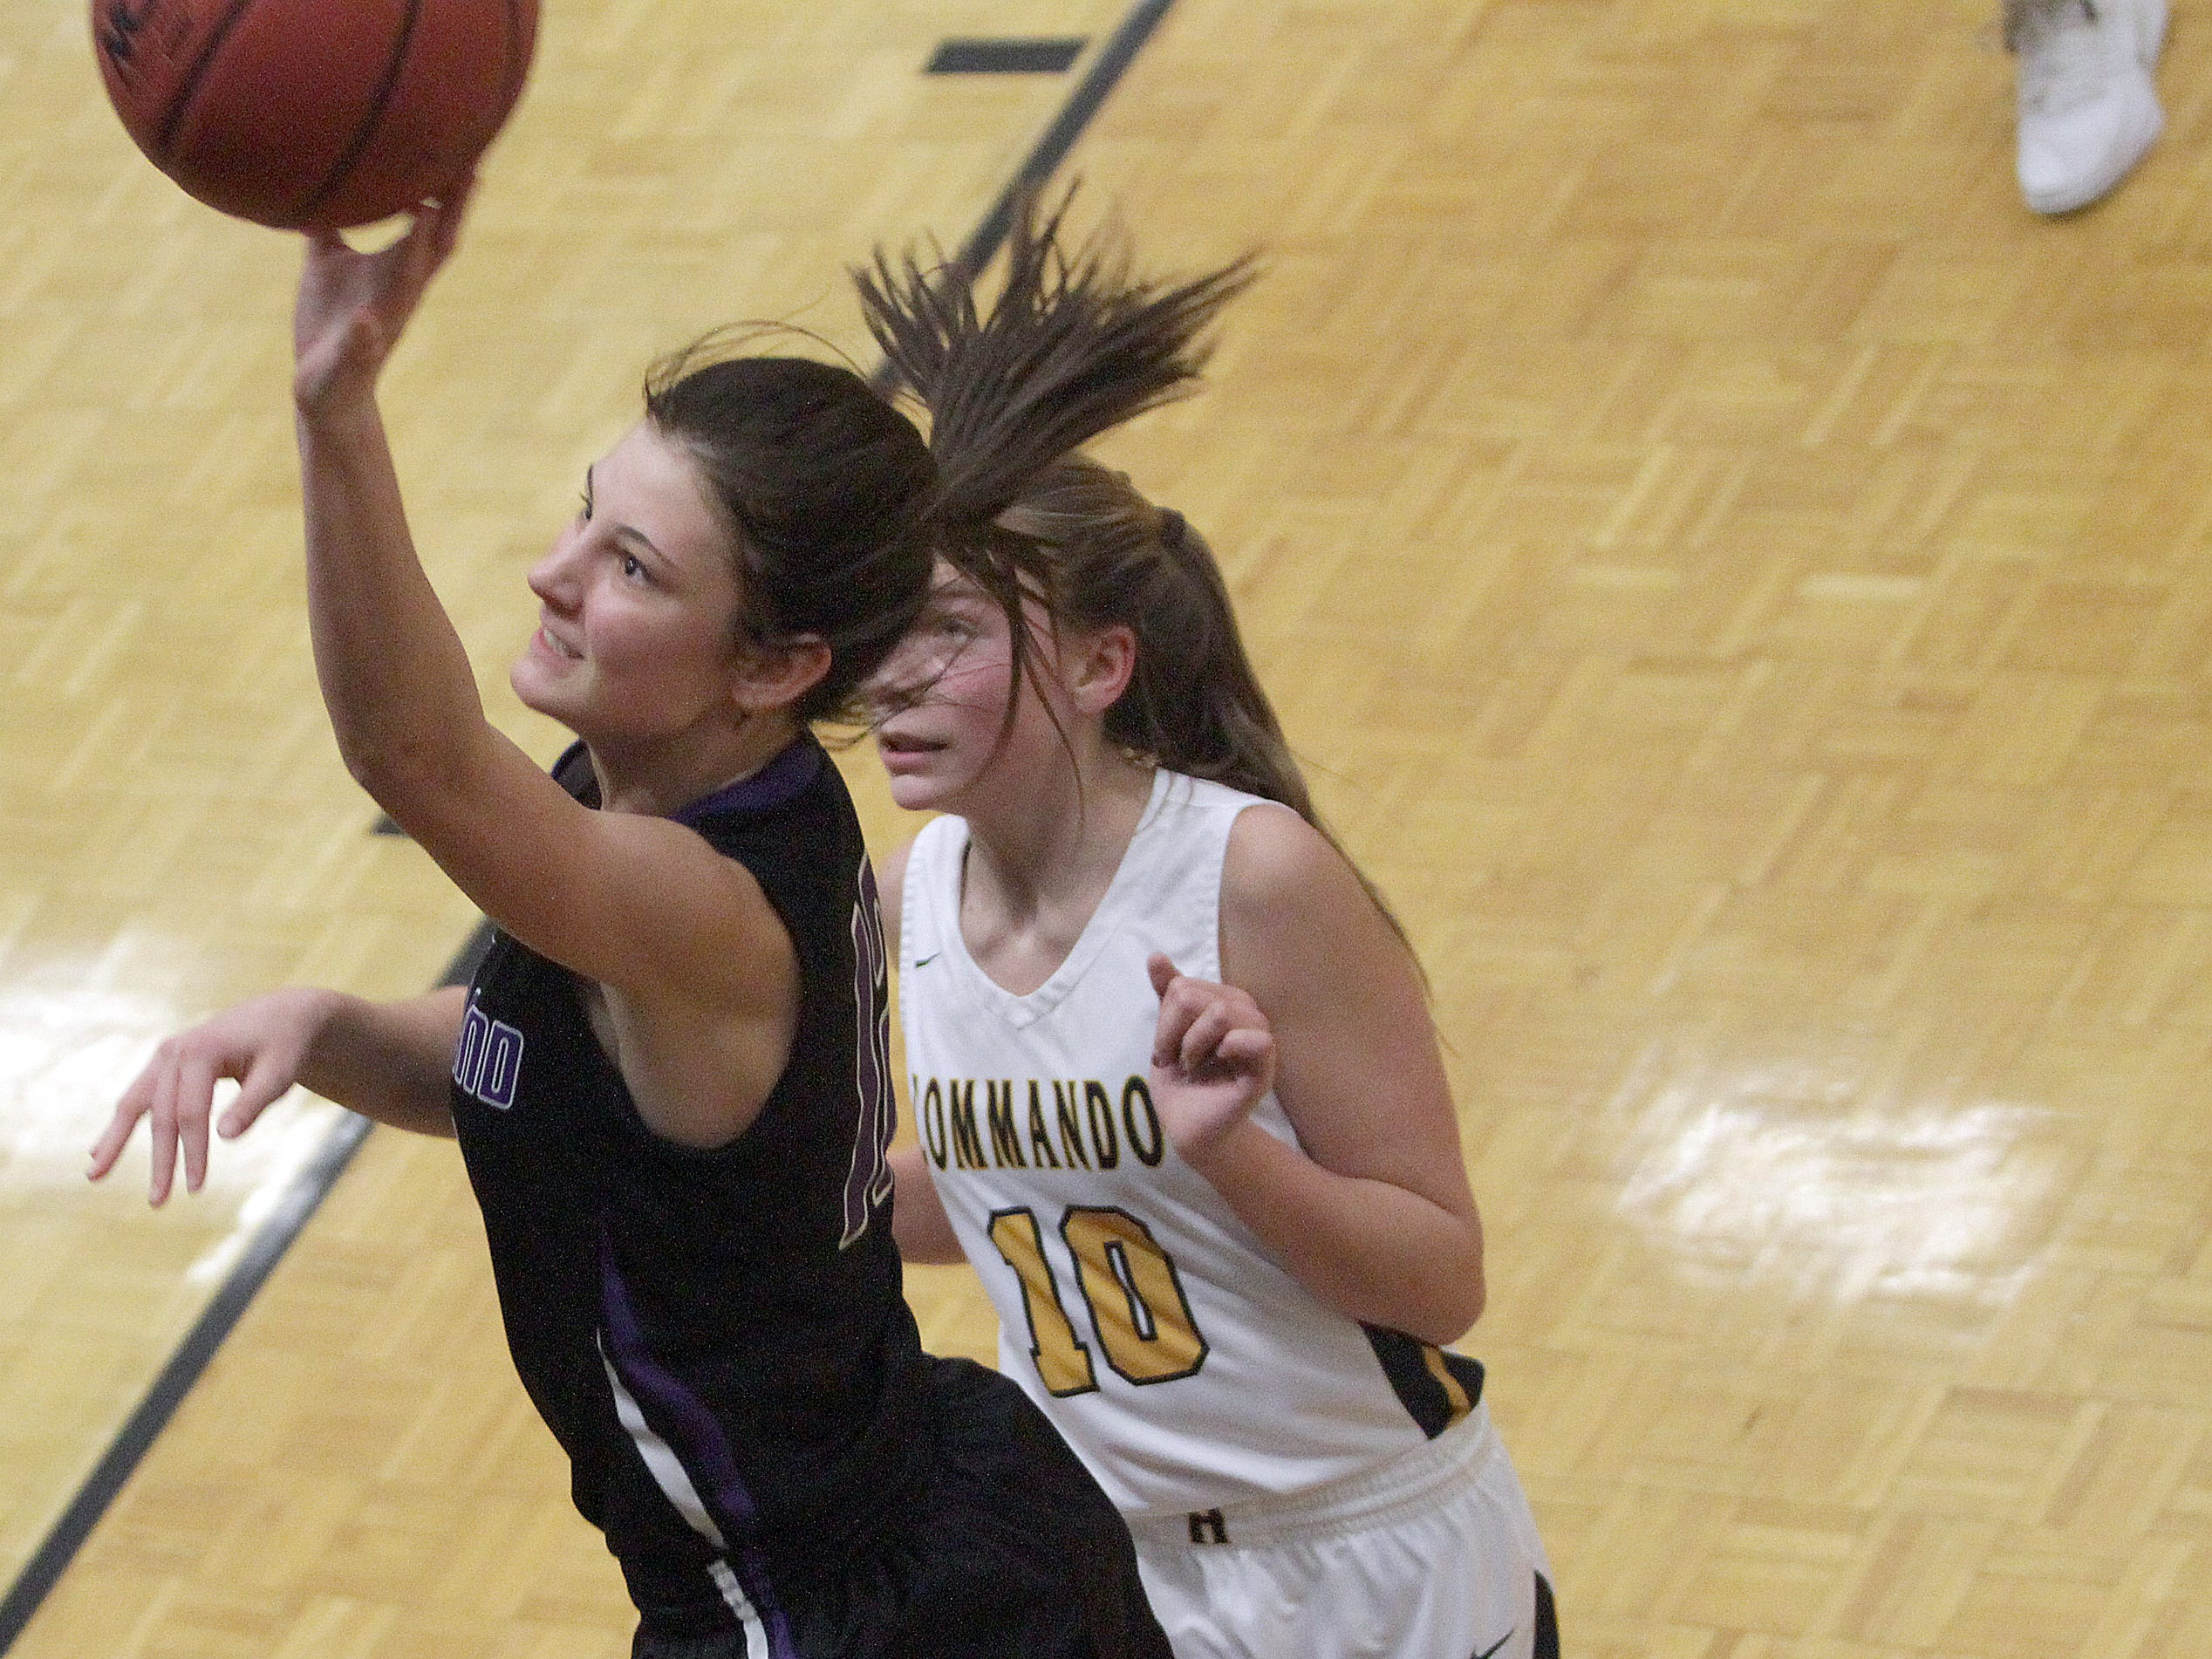 Portland Abi Thomerson drives past Hendersonville's Brette Taylor on Friday, January 4, 2019.